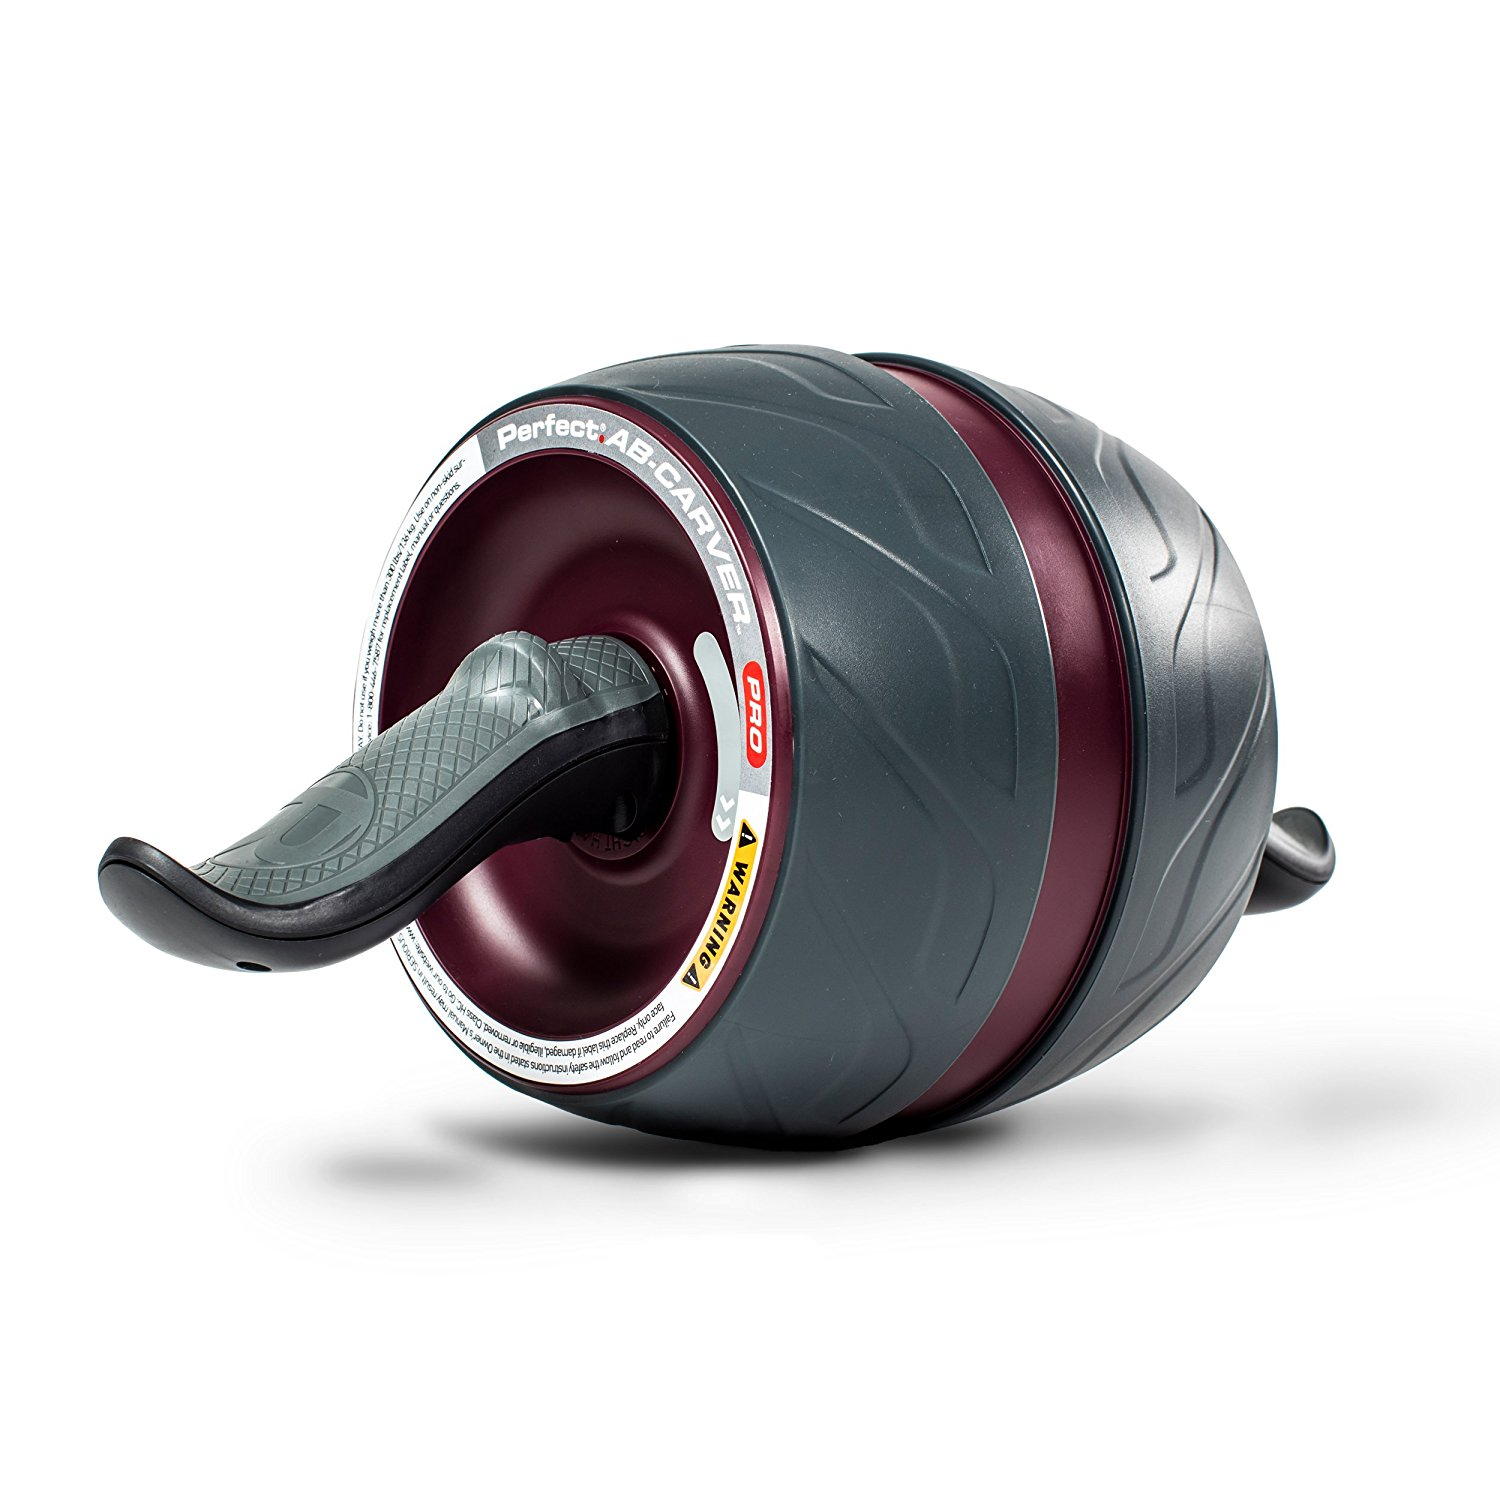 Top 10 Best Ab Roller Wheel for Fitness Review